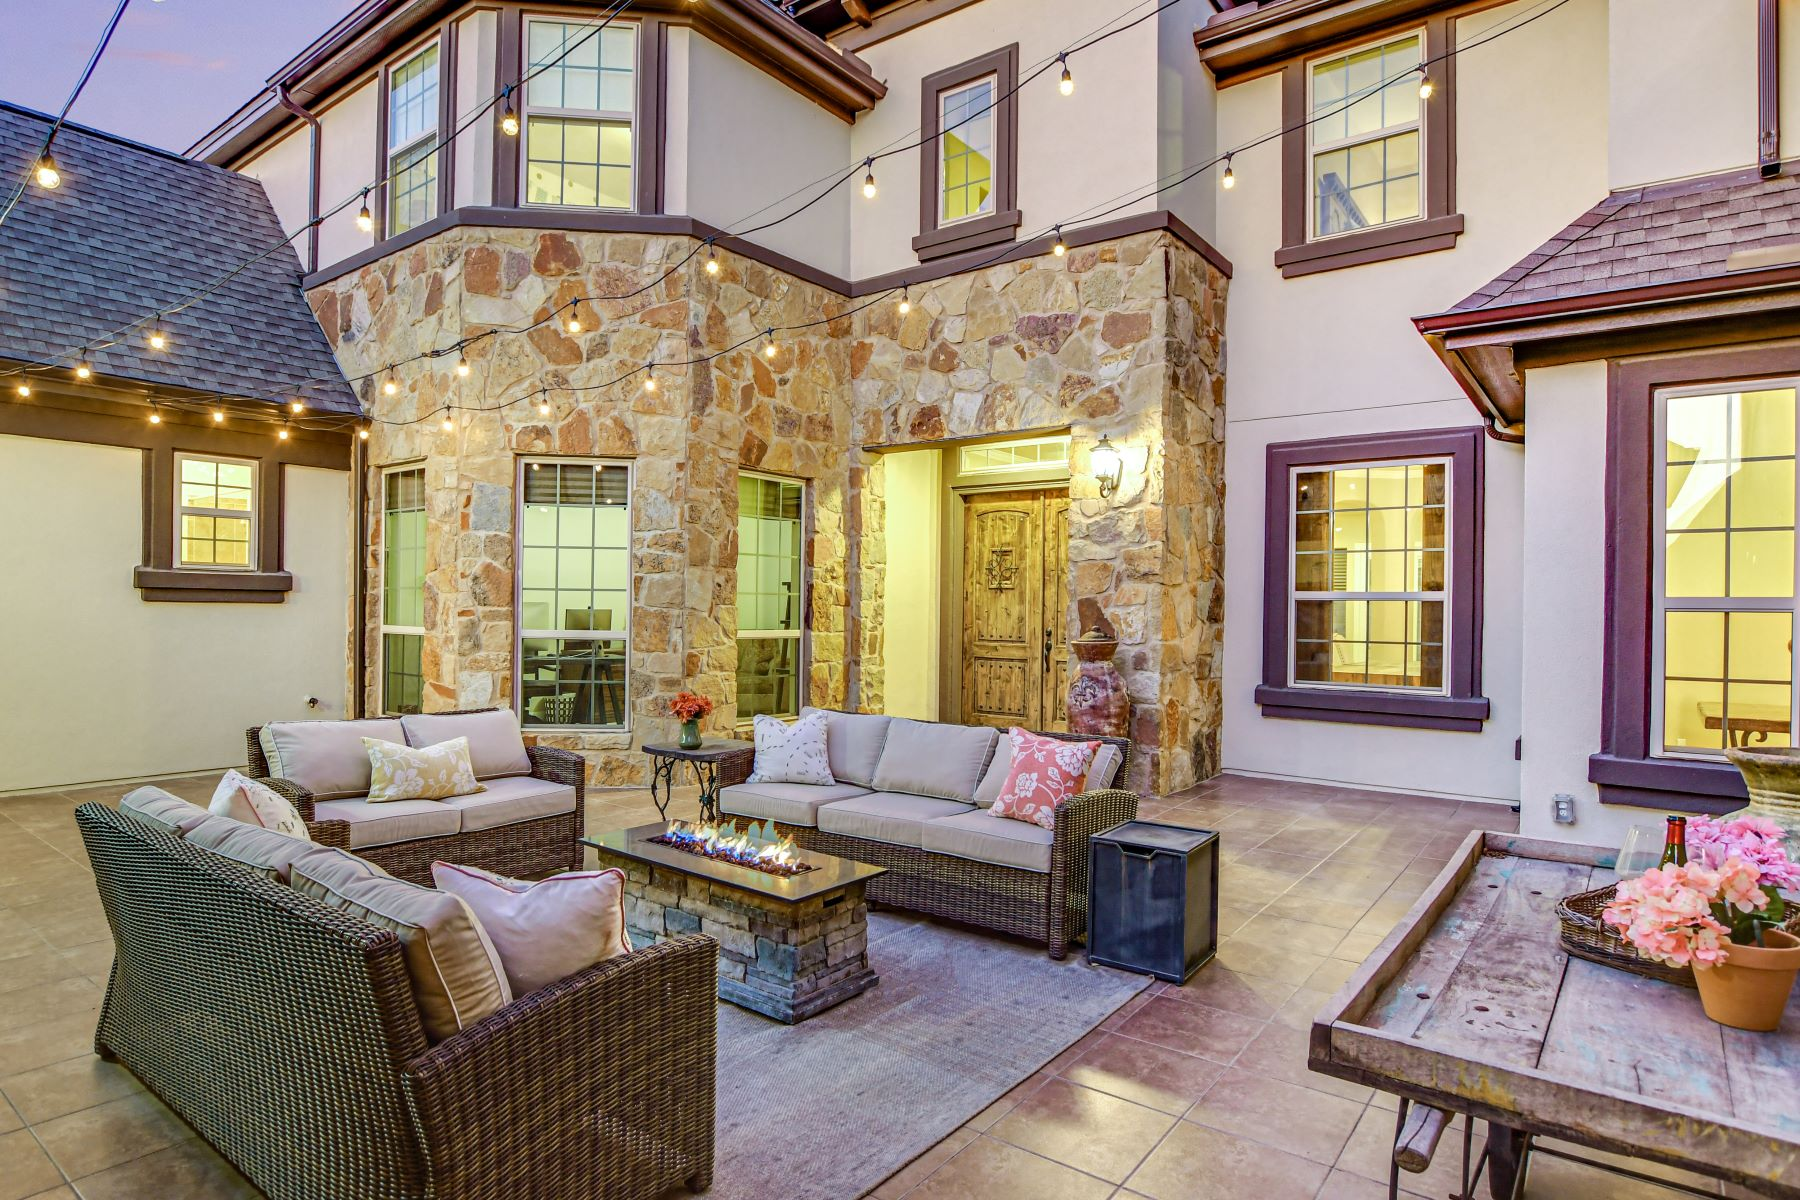 Single Family Homes for Sale at 2216 Milan Meadows Drive, Leander, TX 78641 2216 Milan Meadows Drive Leander, Texas 78641 United States